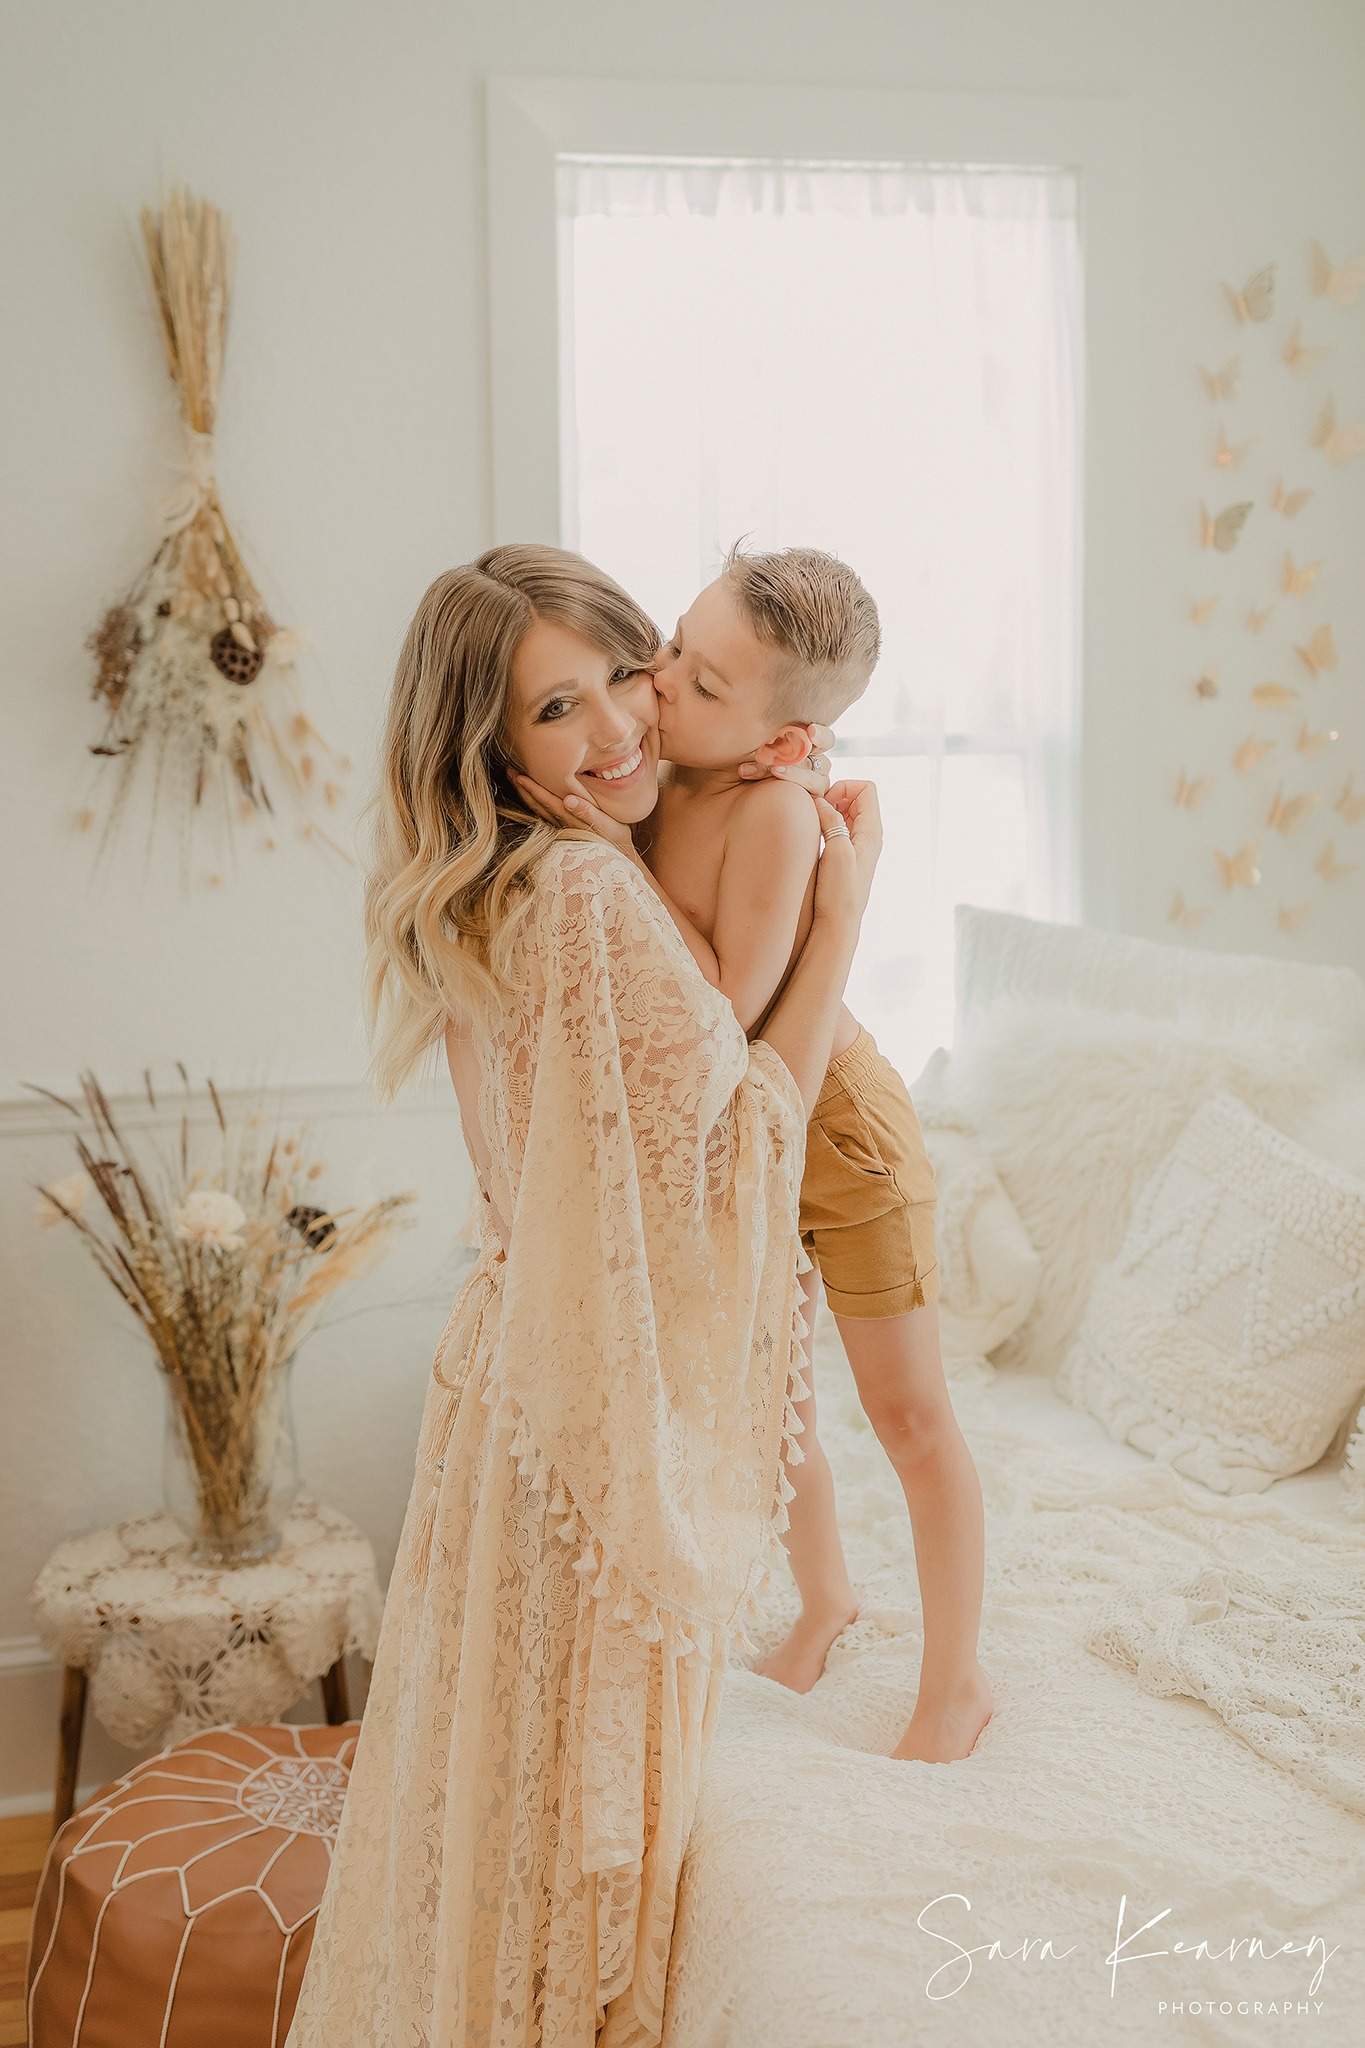 Boho Photo Shoot!! Mommy photoshoot | Sara Kearney Orlando Photographer